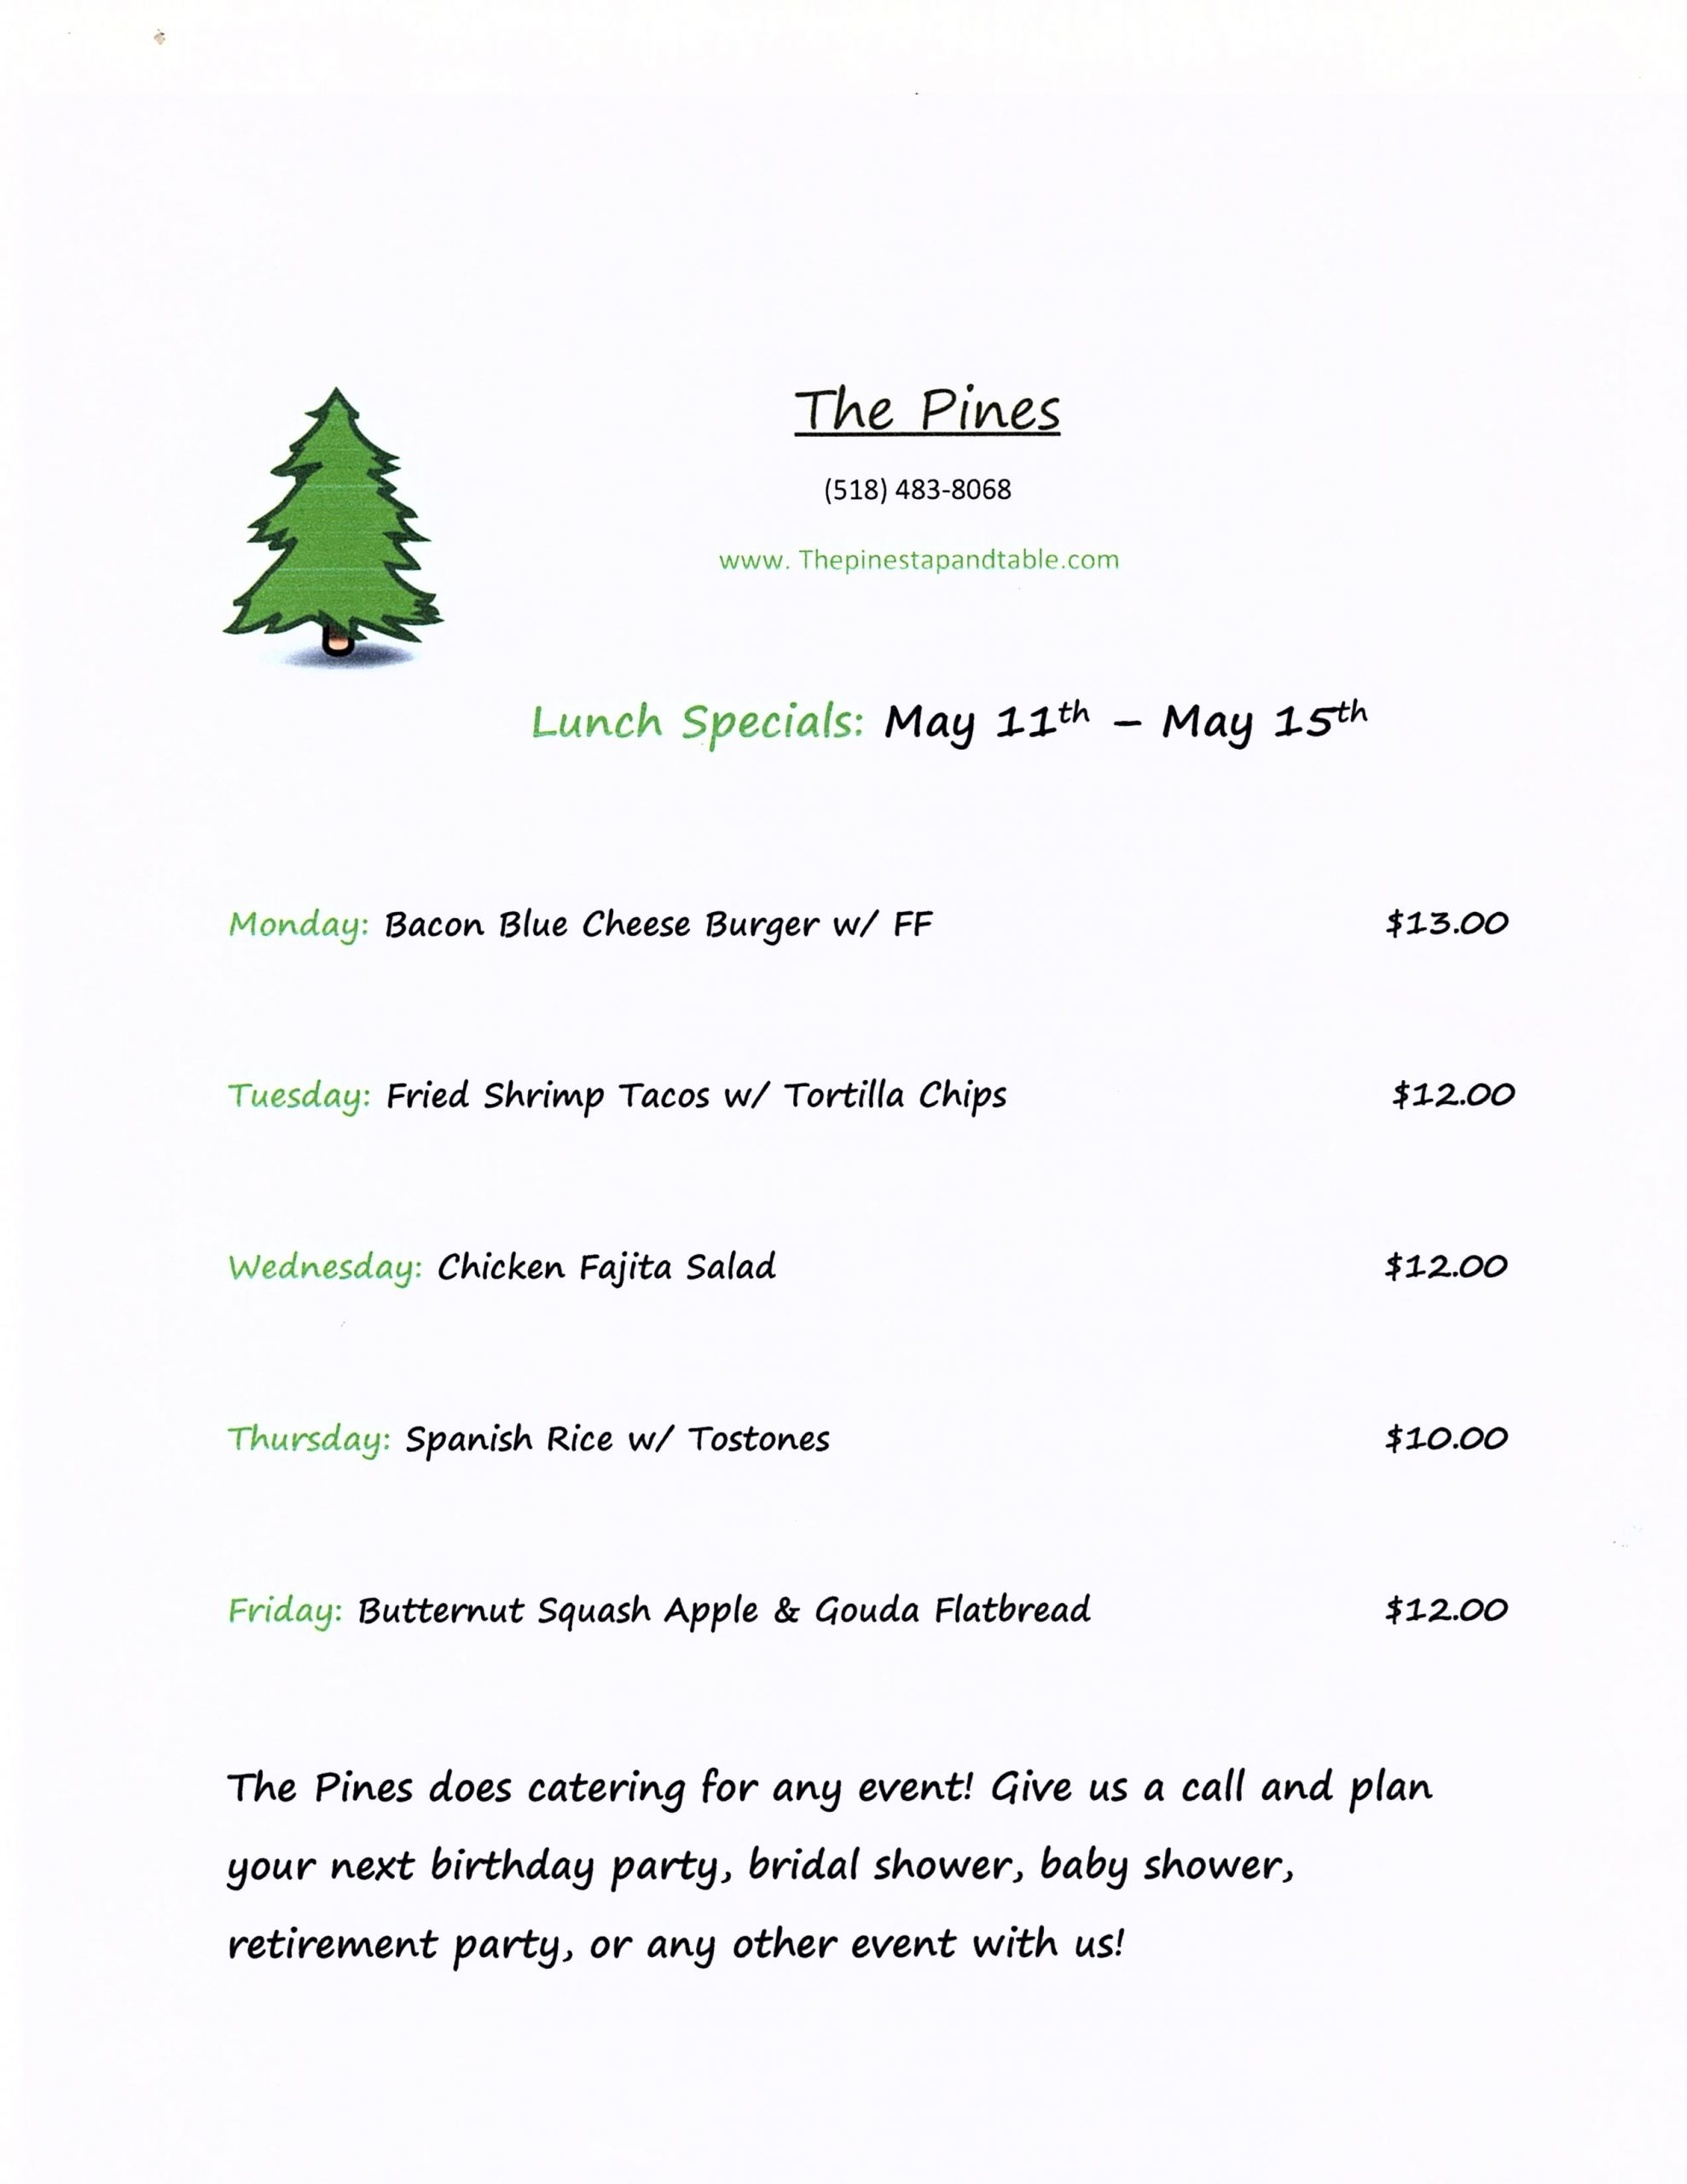 The Pine Tap and Table Lunch Specials